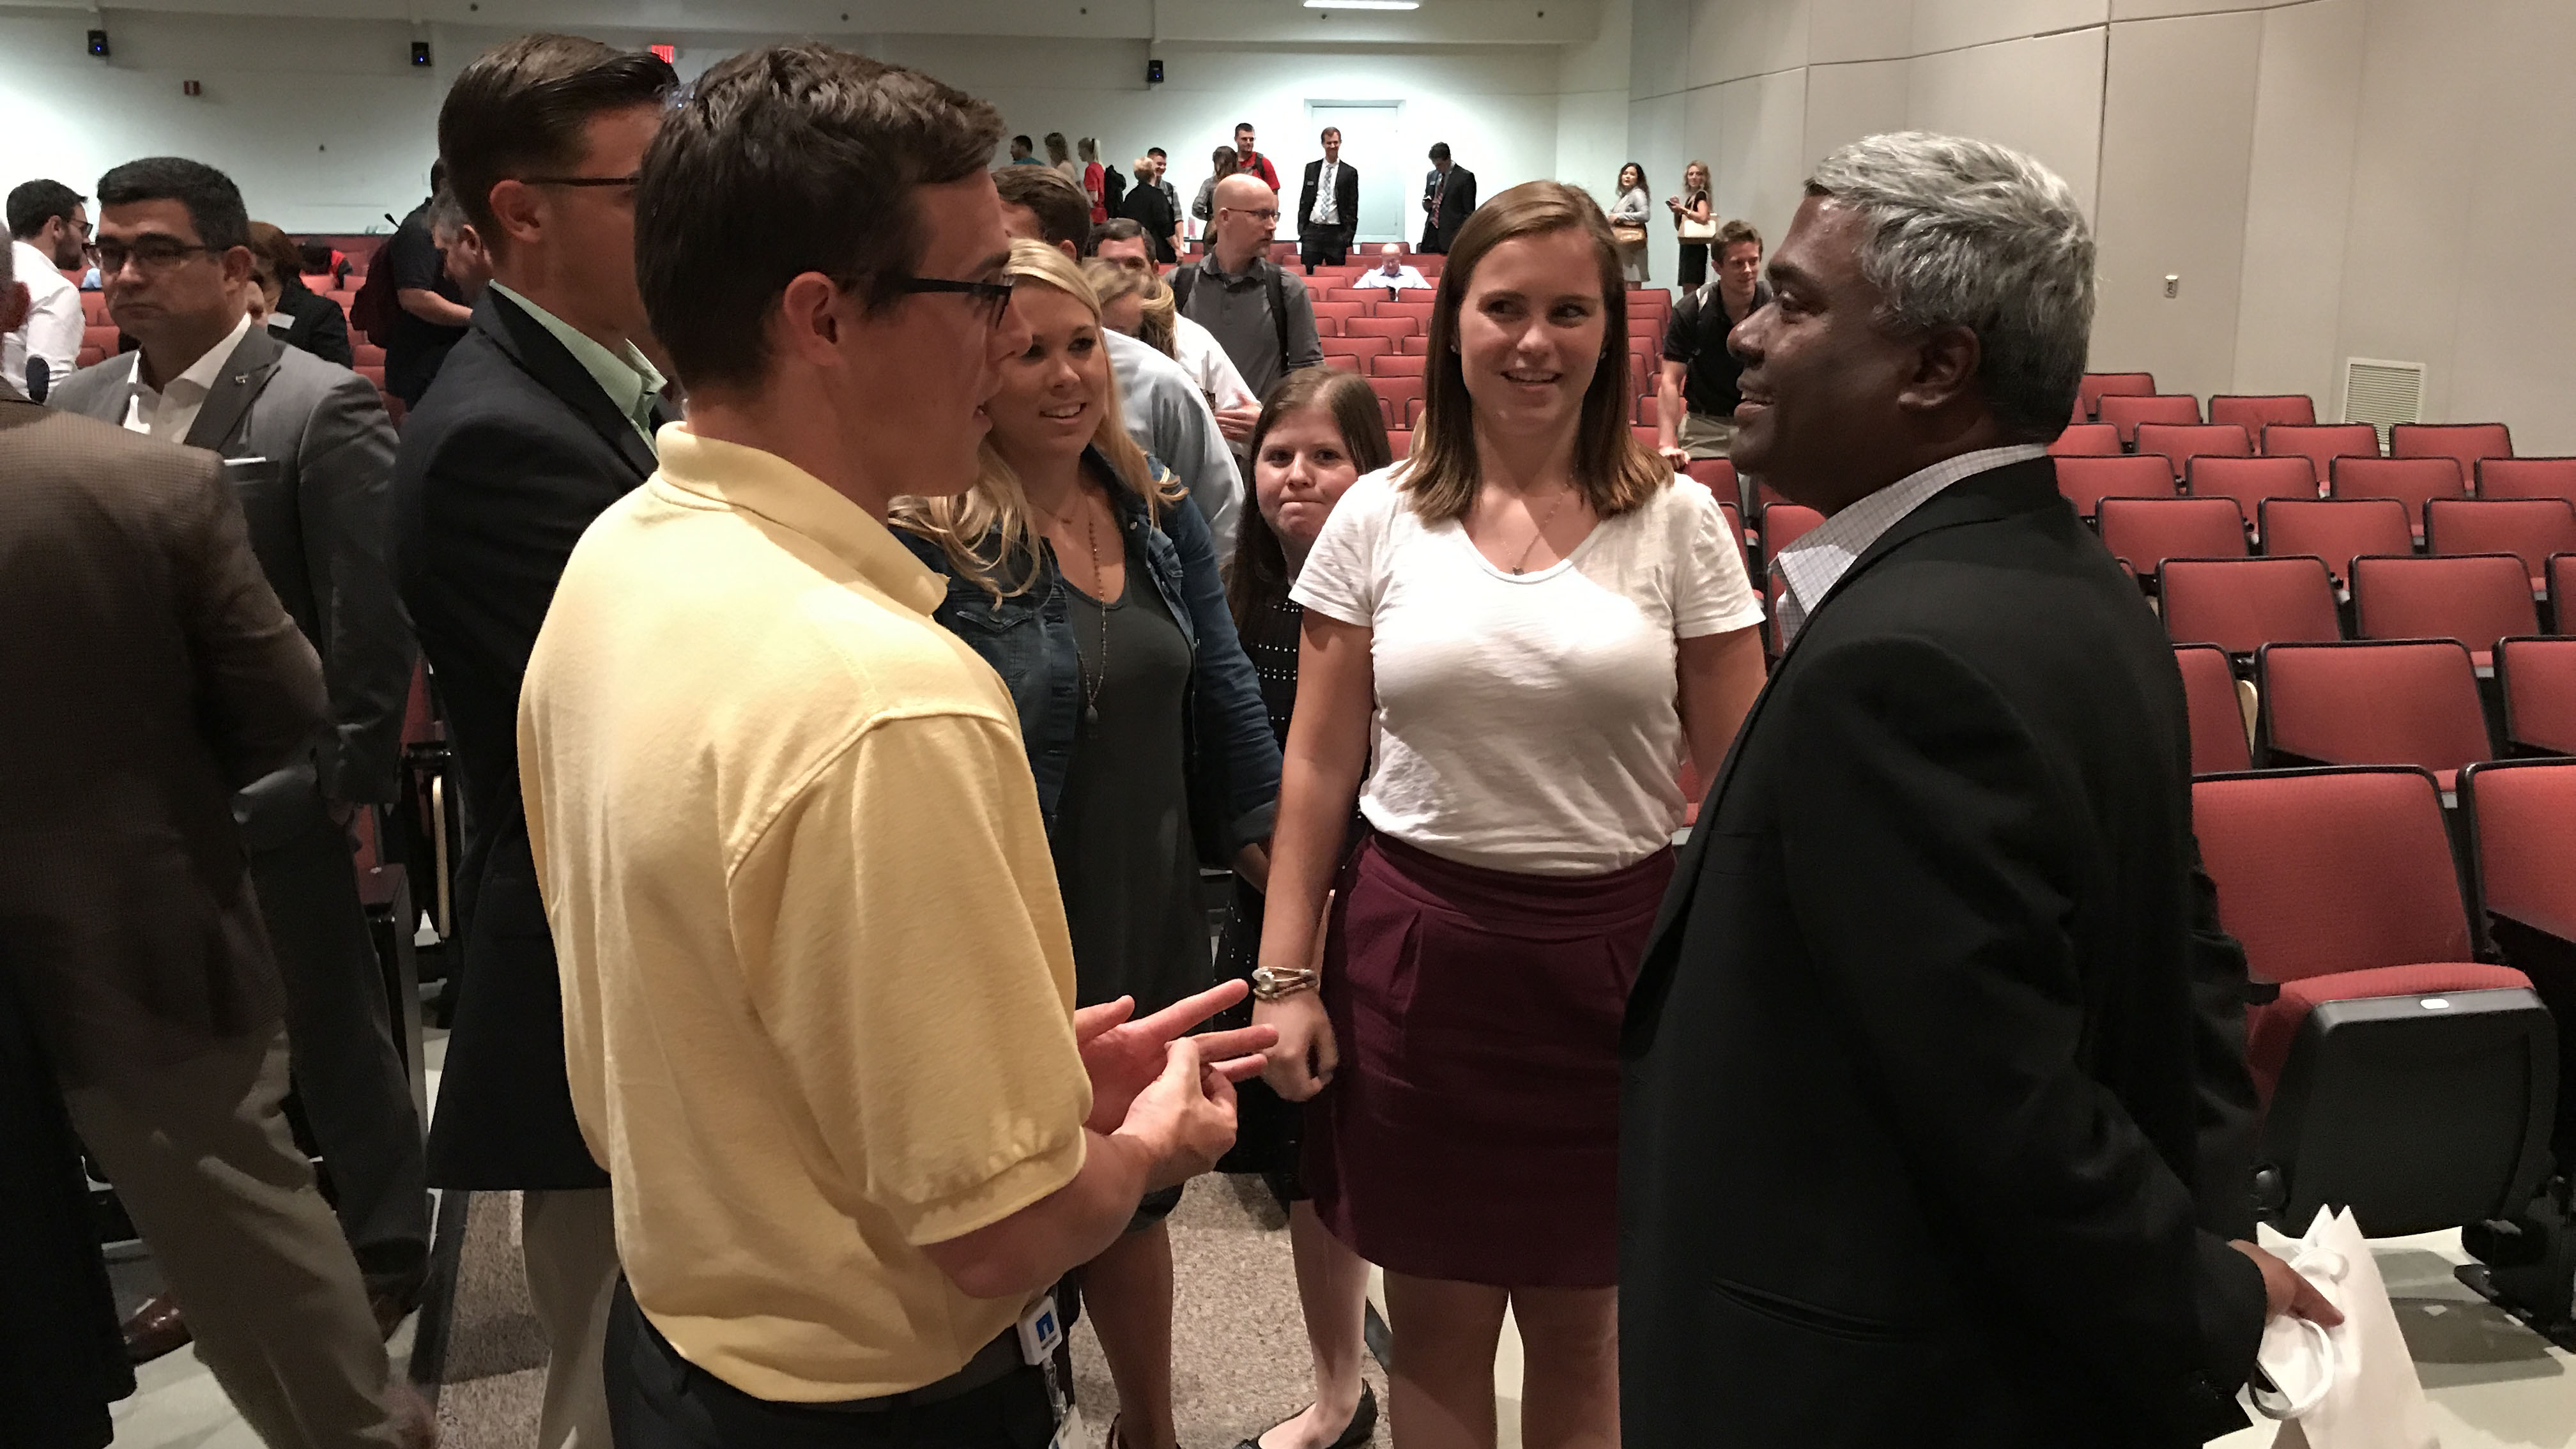 George Kurian, chief executive officer of NetApp, spoke with students and other guests following the NC State Poole College of Management's Executive Leadership Series program on Sept. 20, 2017